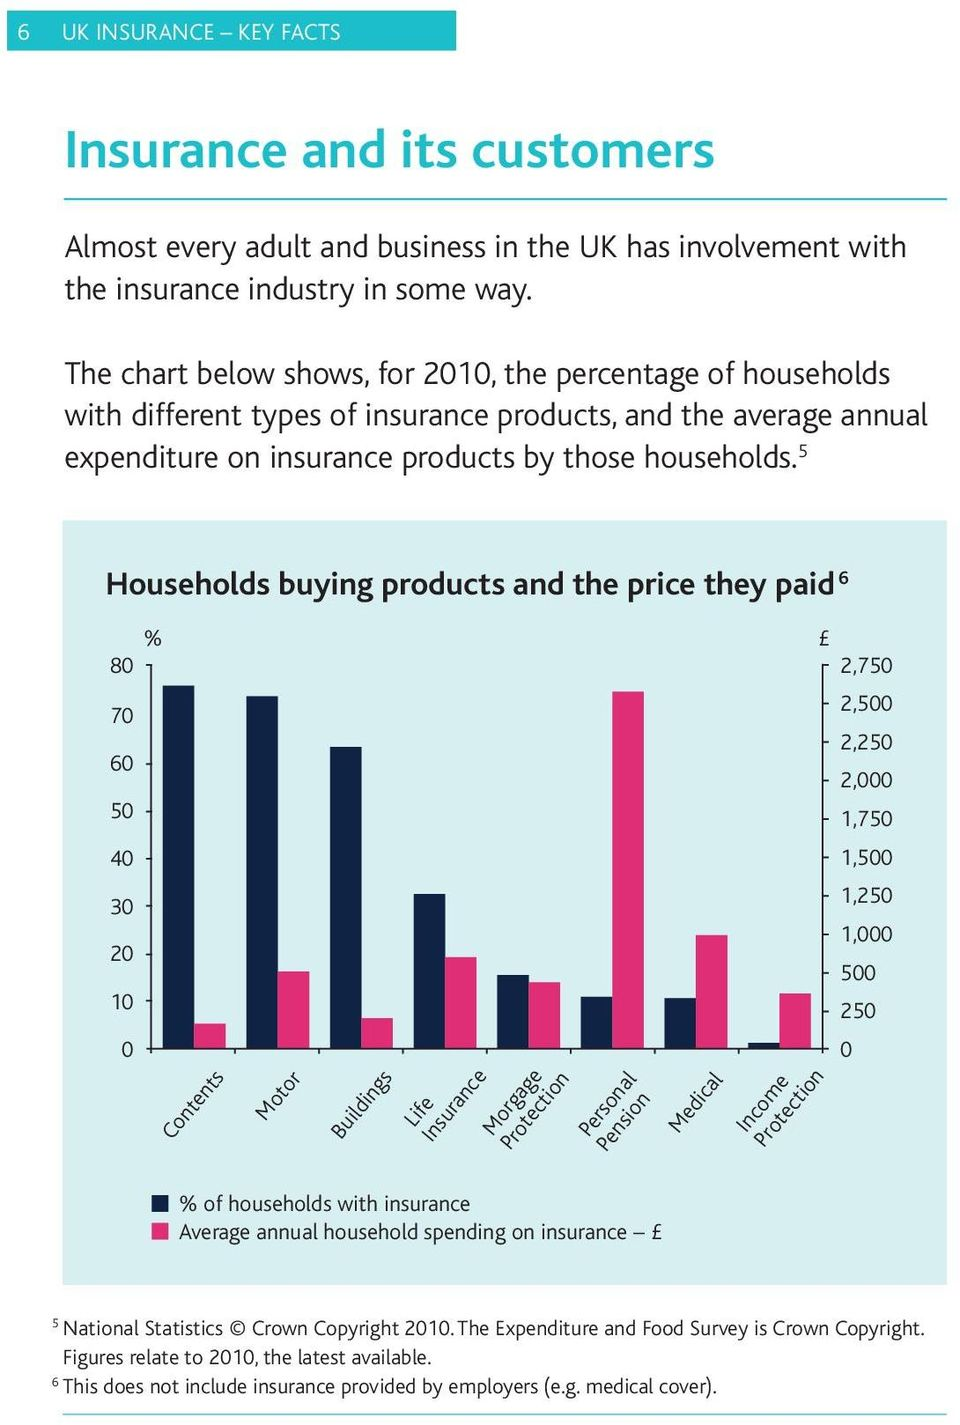 5 Households buying products and the price they paid 6 % 80 2,750 2,500 70 2,250 60 2,000 50 1,750 40 1,500 30 1,250 1,000 20 500 10 250 0 0 Contents Motor Buildings Life Insurance Morgage Protection